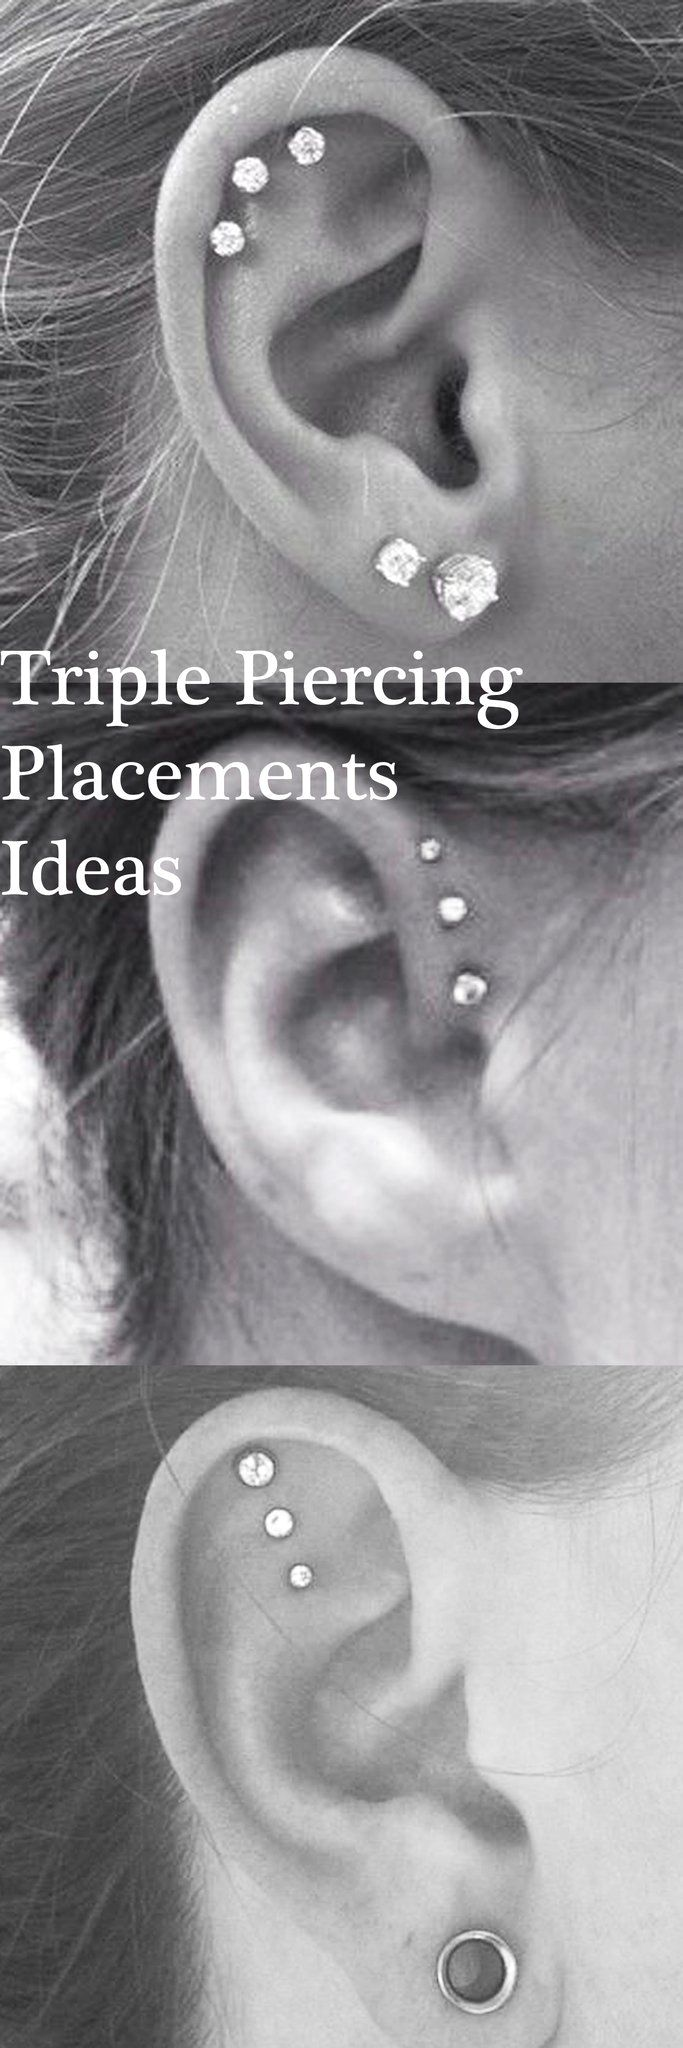 Bump near cartilage piercing  Cute Ear Piercing Id Cute Ear Piercing Ideas at MyBodiArt